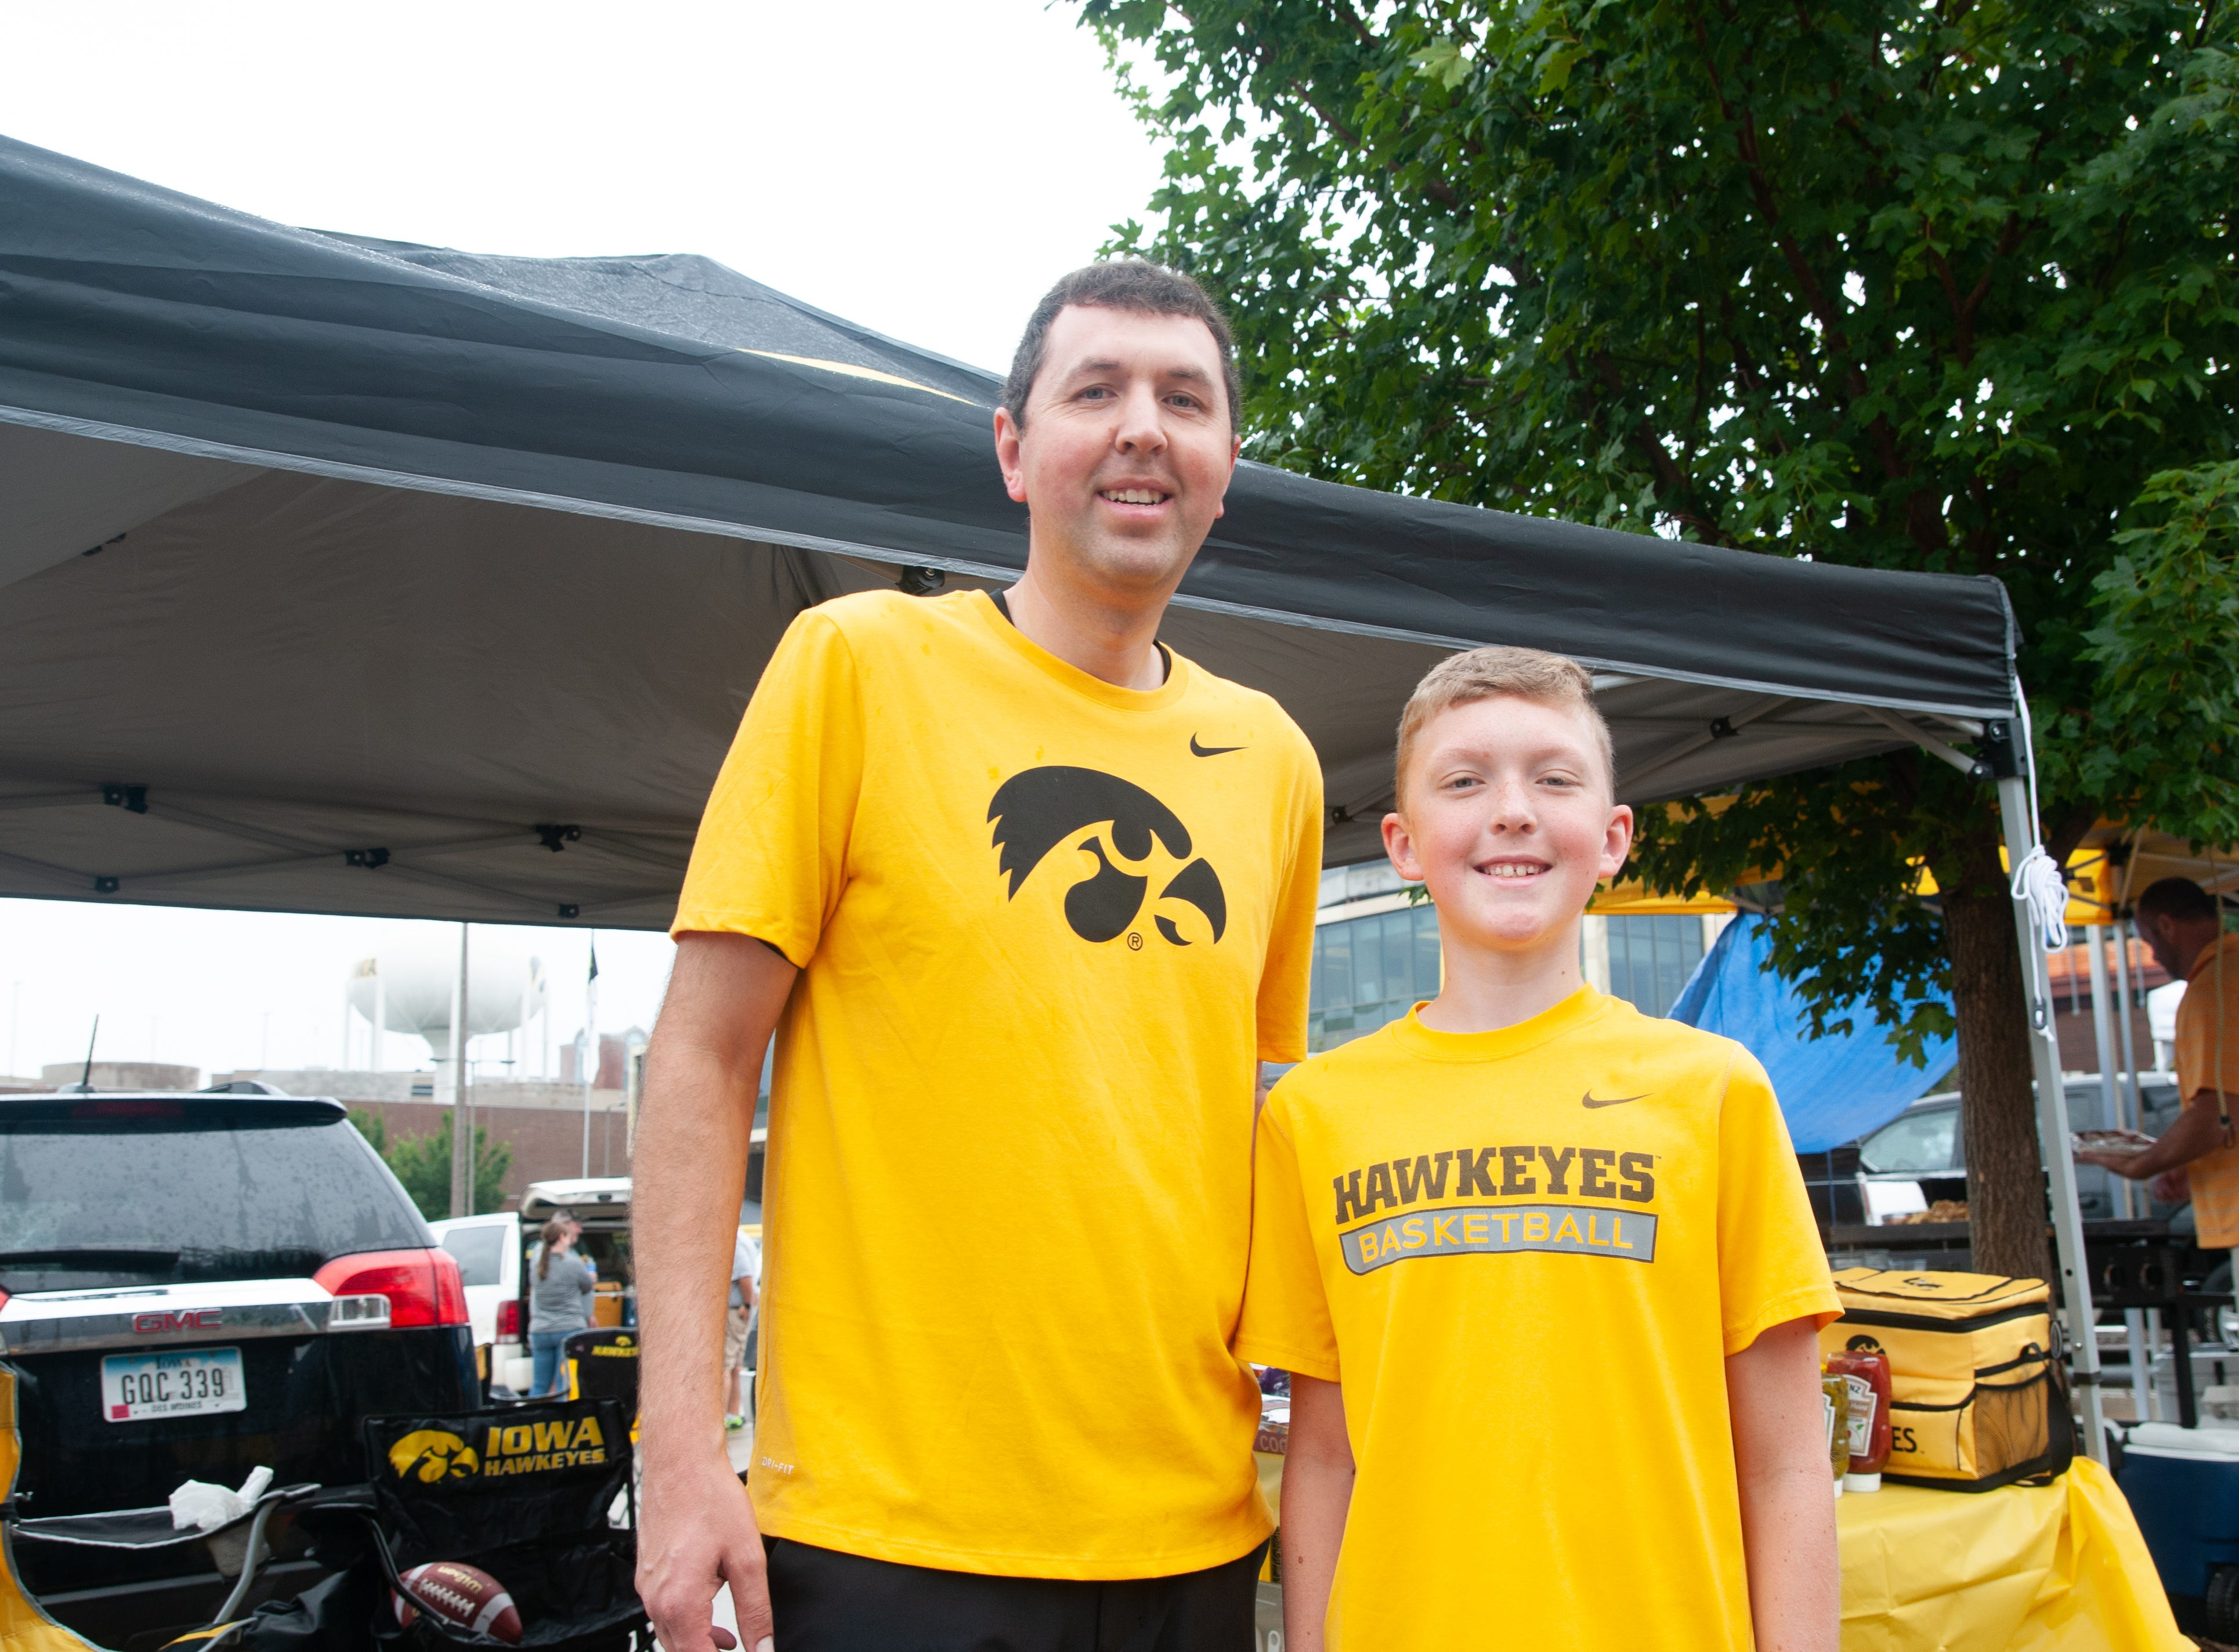 Steve, 40, (left), and Kyle Etka, 14 of Burlington, Saturday, Sept. 1, 2018, while tailgating before the Iowa game against Northern Illinois in Iowa City.